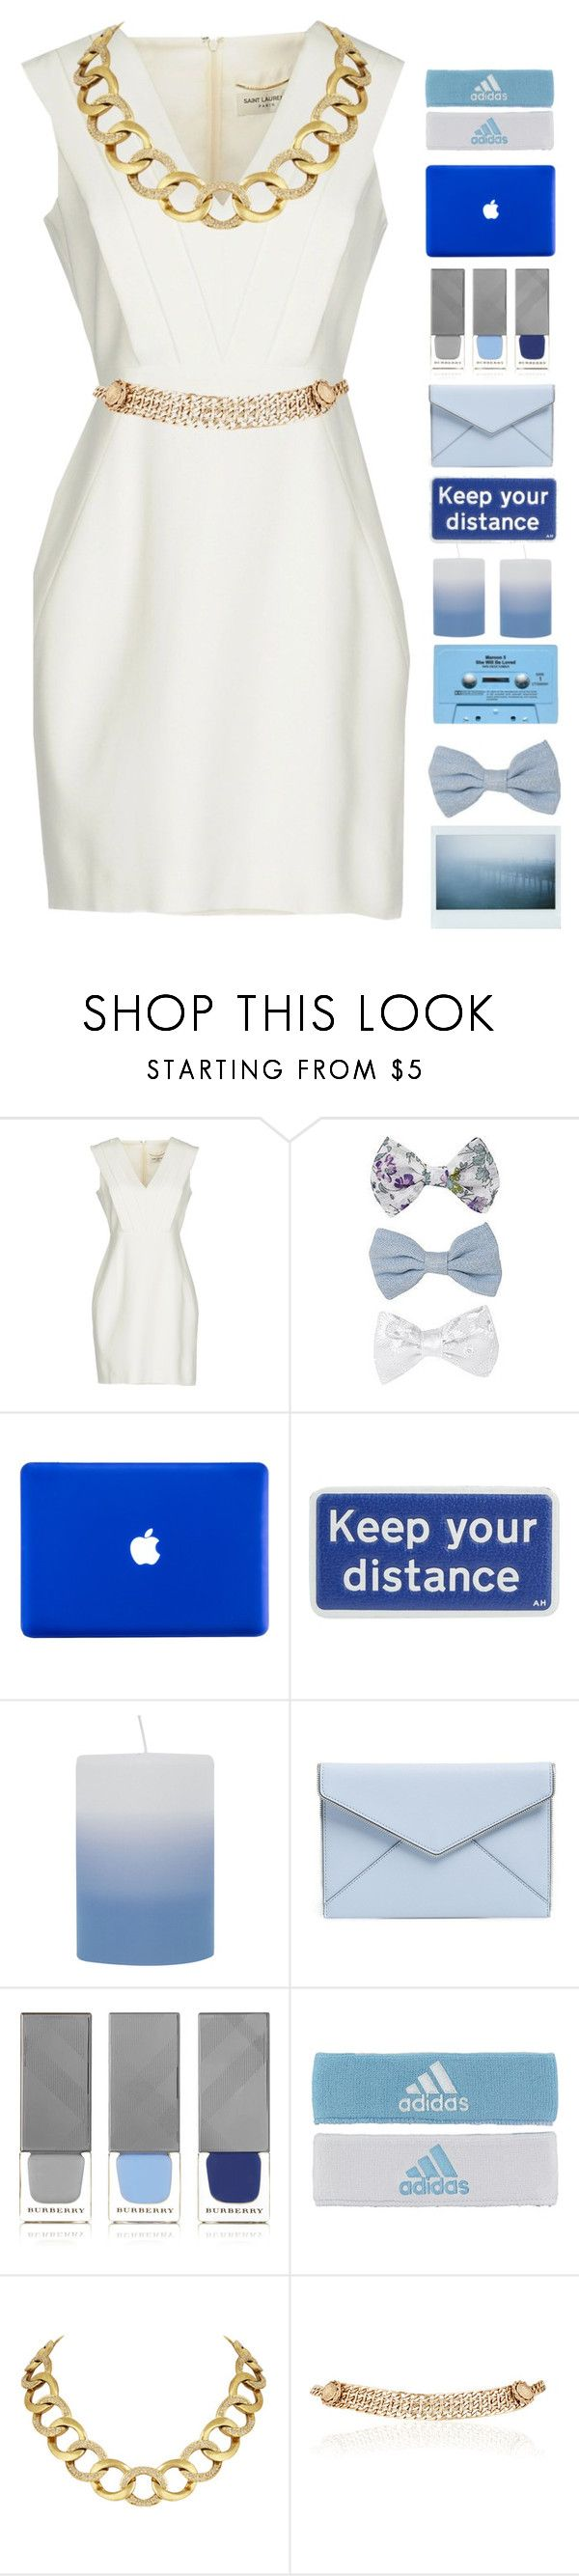 """When are things gonna slow down"" by jmn312 ❤ liked on Polyvore featuring Yves Saint Laurent, New Look, Anya Hindmarch, CASSETTE, Broste Copenhagen, Rebecca Minkoff, Burberry, adidas, House of Harlow 1960 and Maison Mayle"